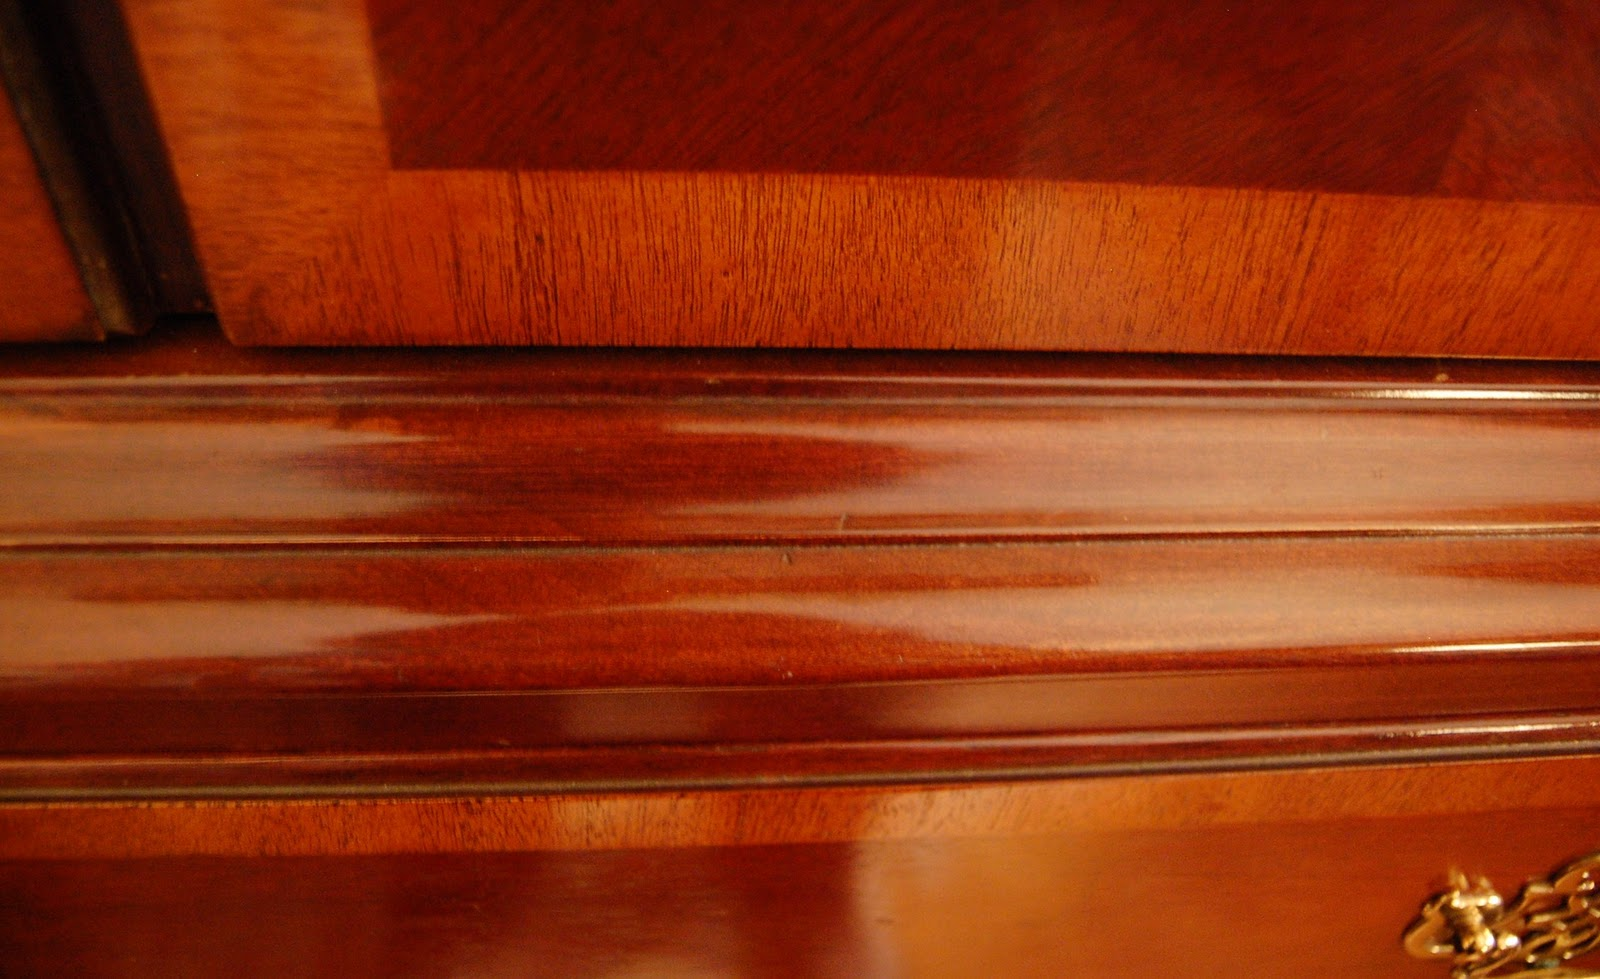 Mahogany Wood Color ~ Hiding ugly scratches on furniture